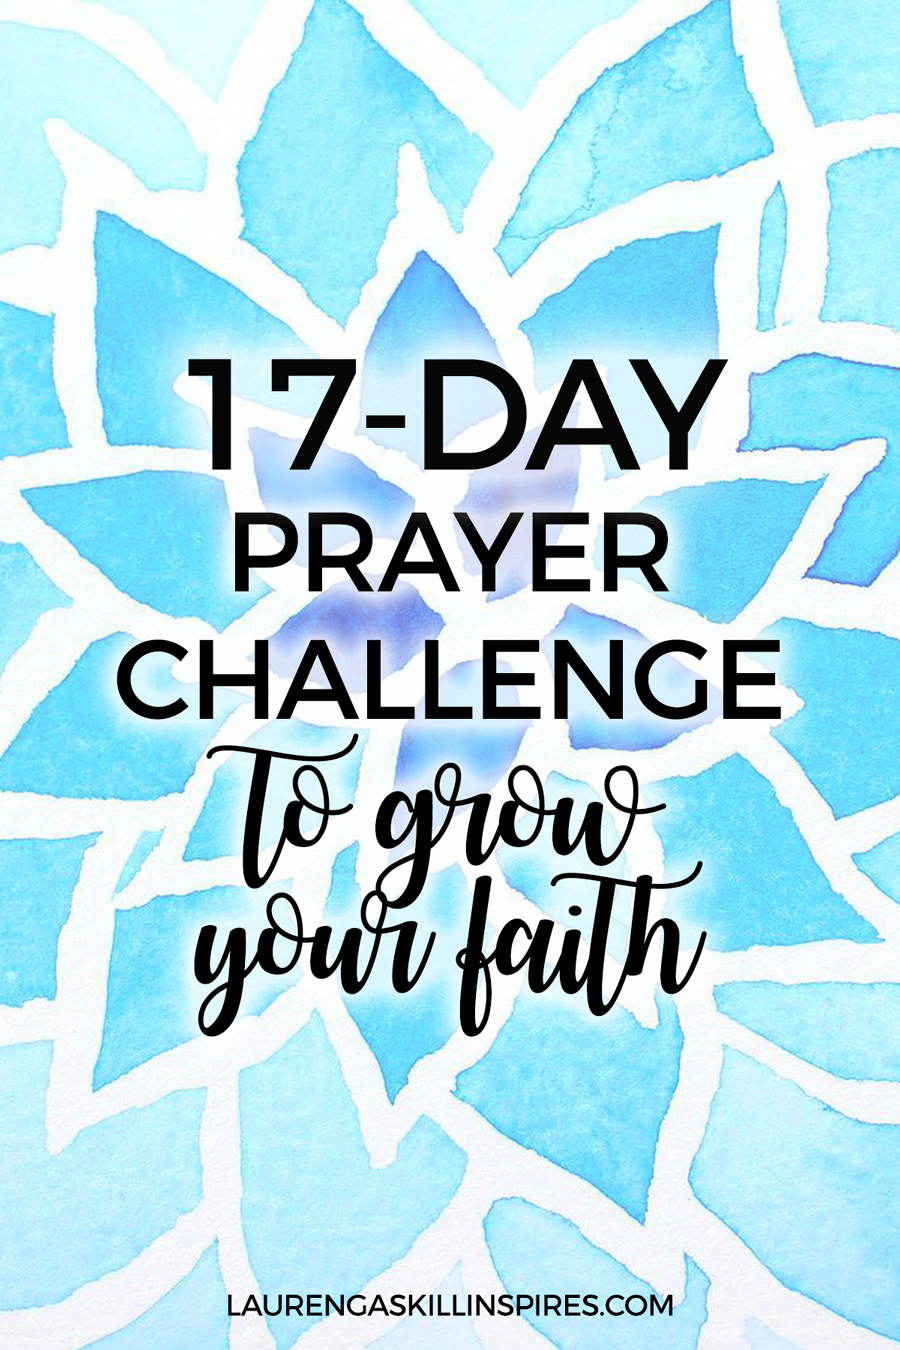 17-Day Prayer Challenge for 2017